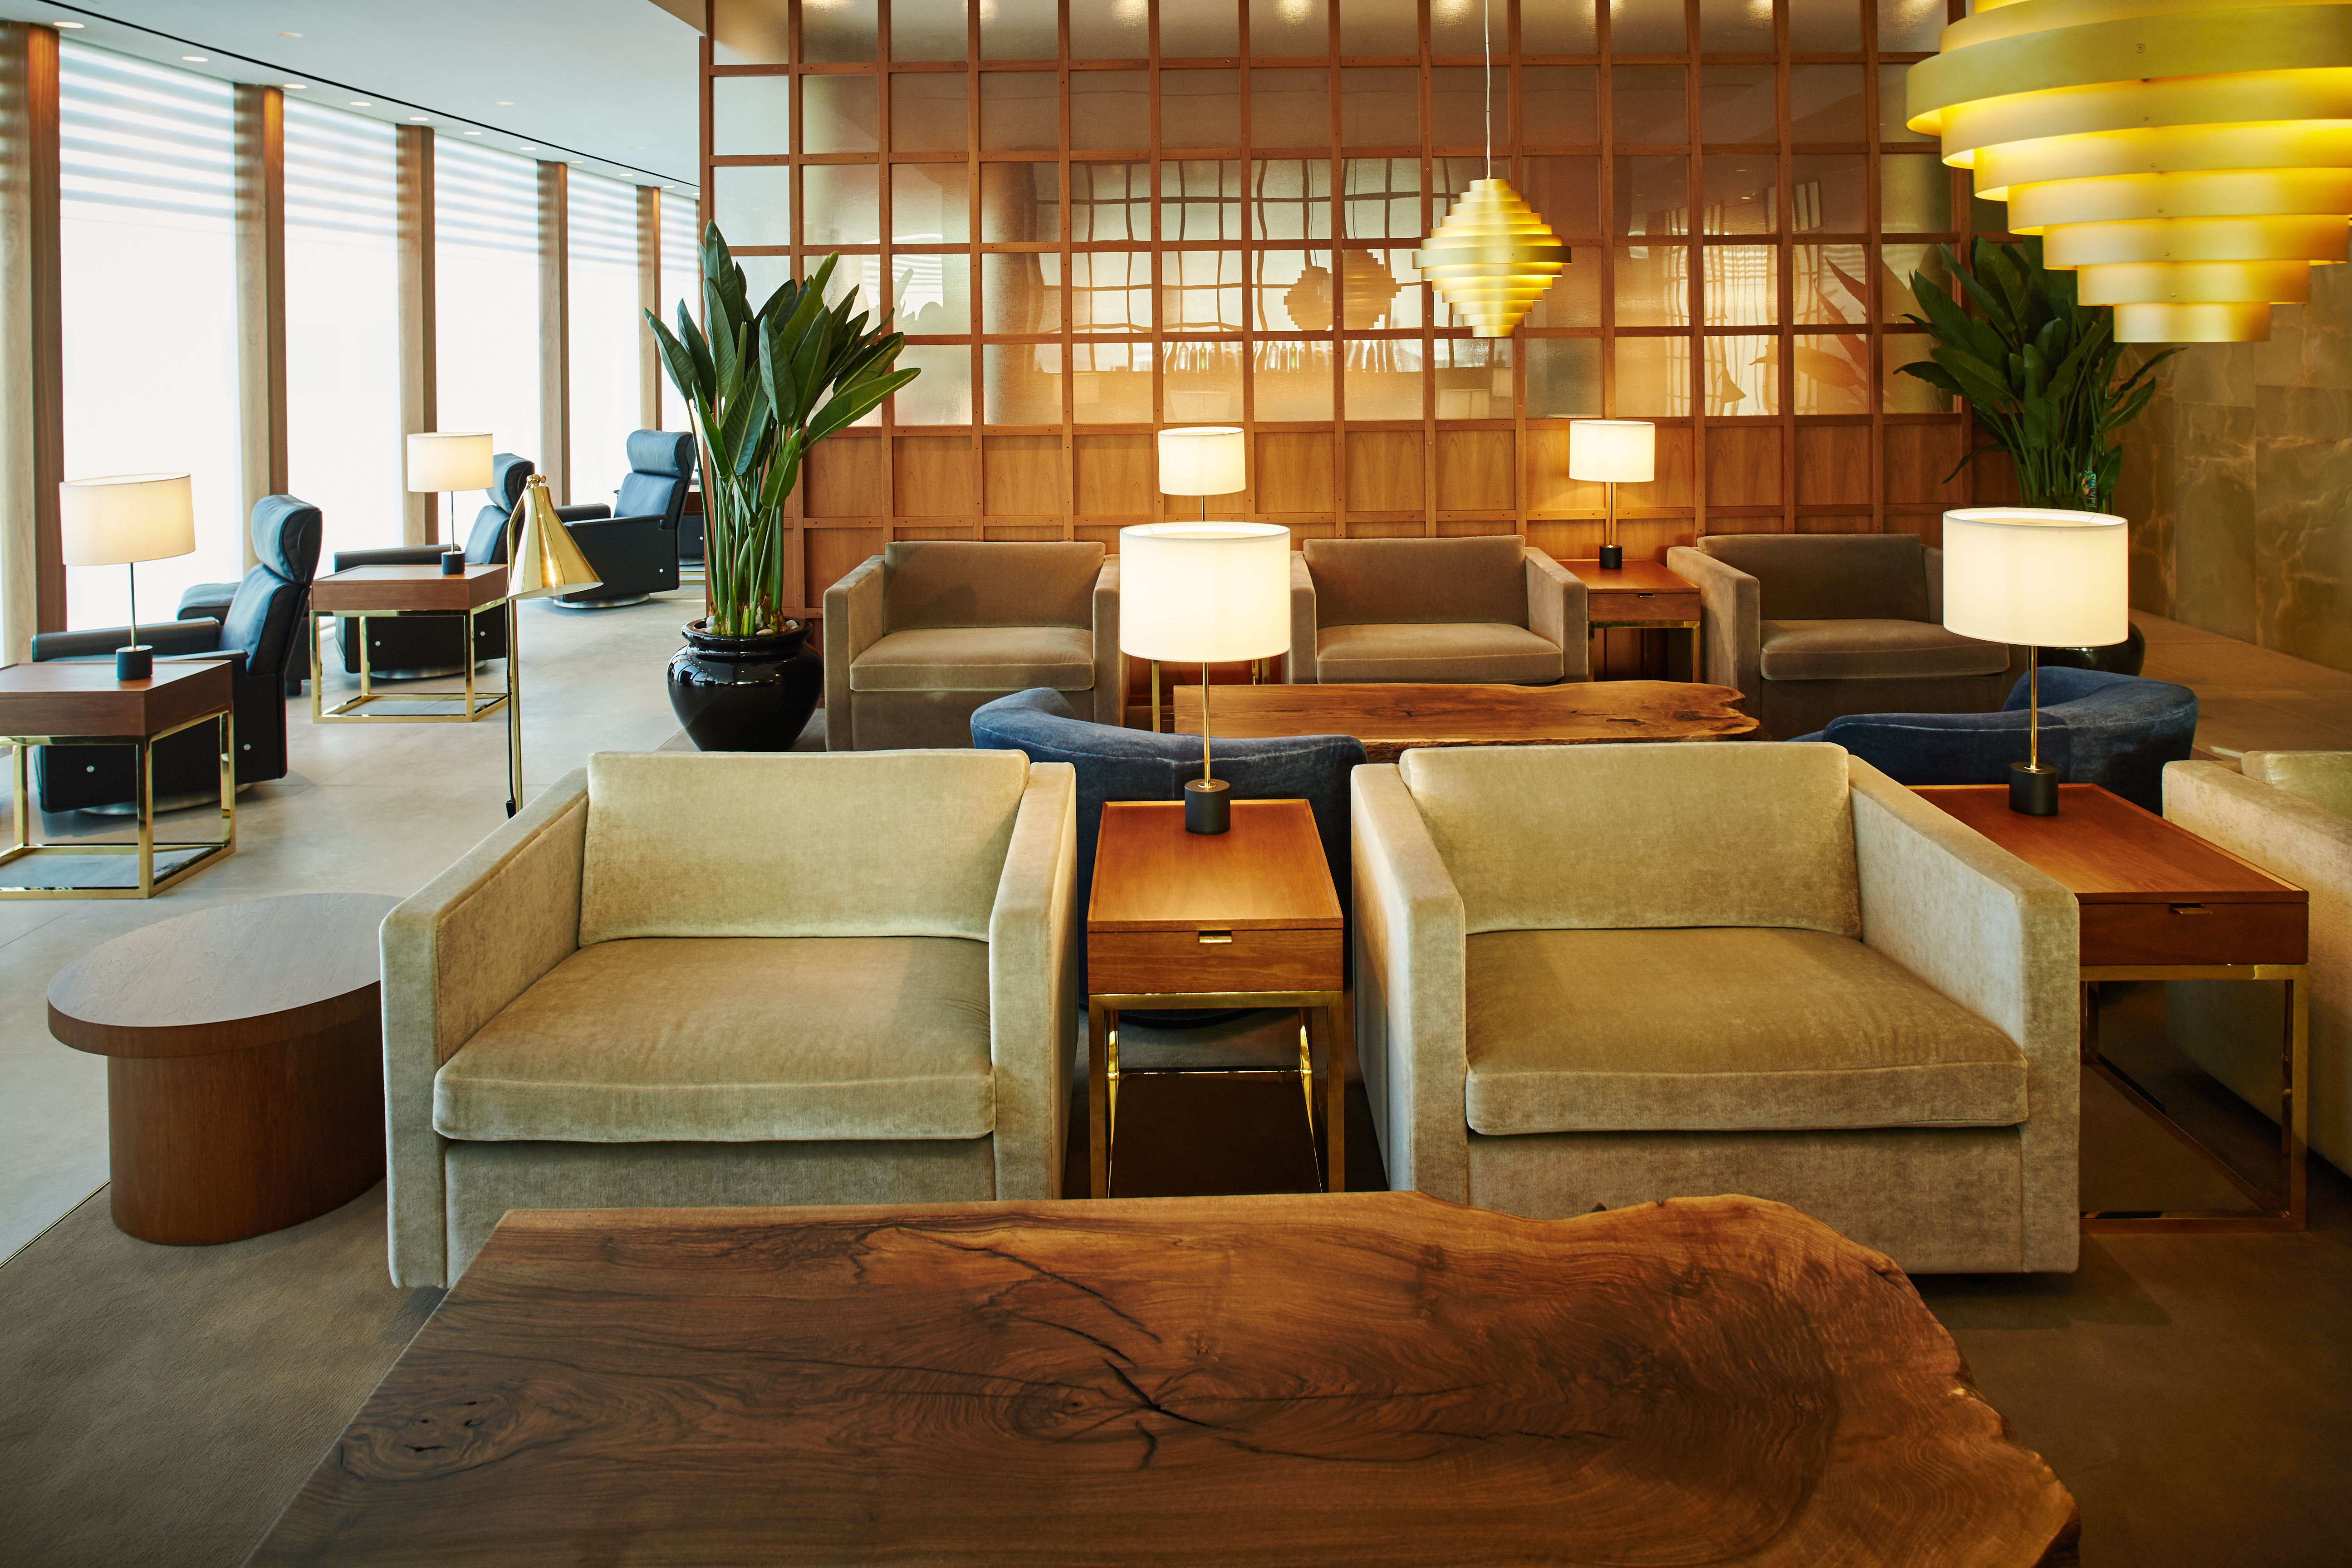 cathay-pacific-heathrow-lounge-image-2